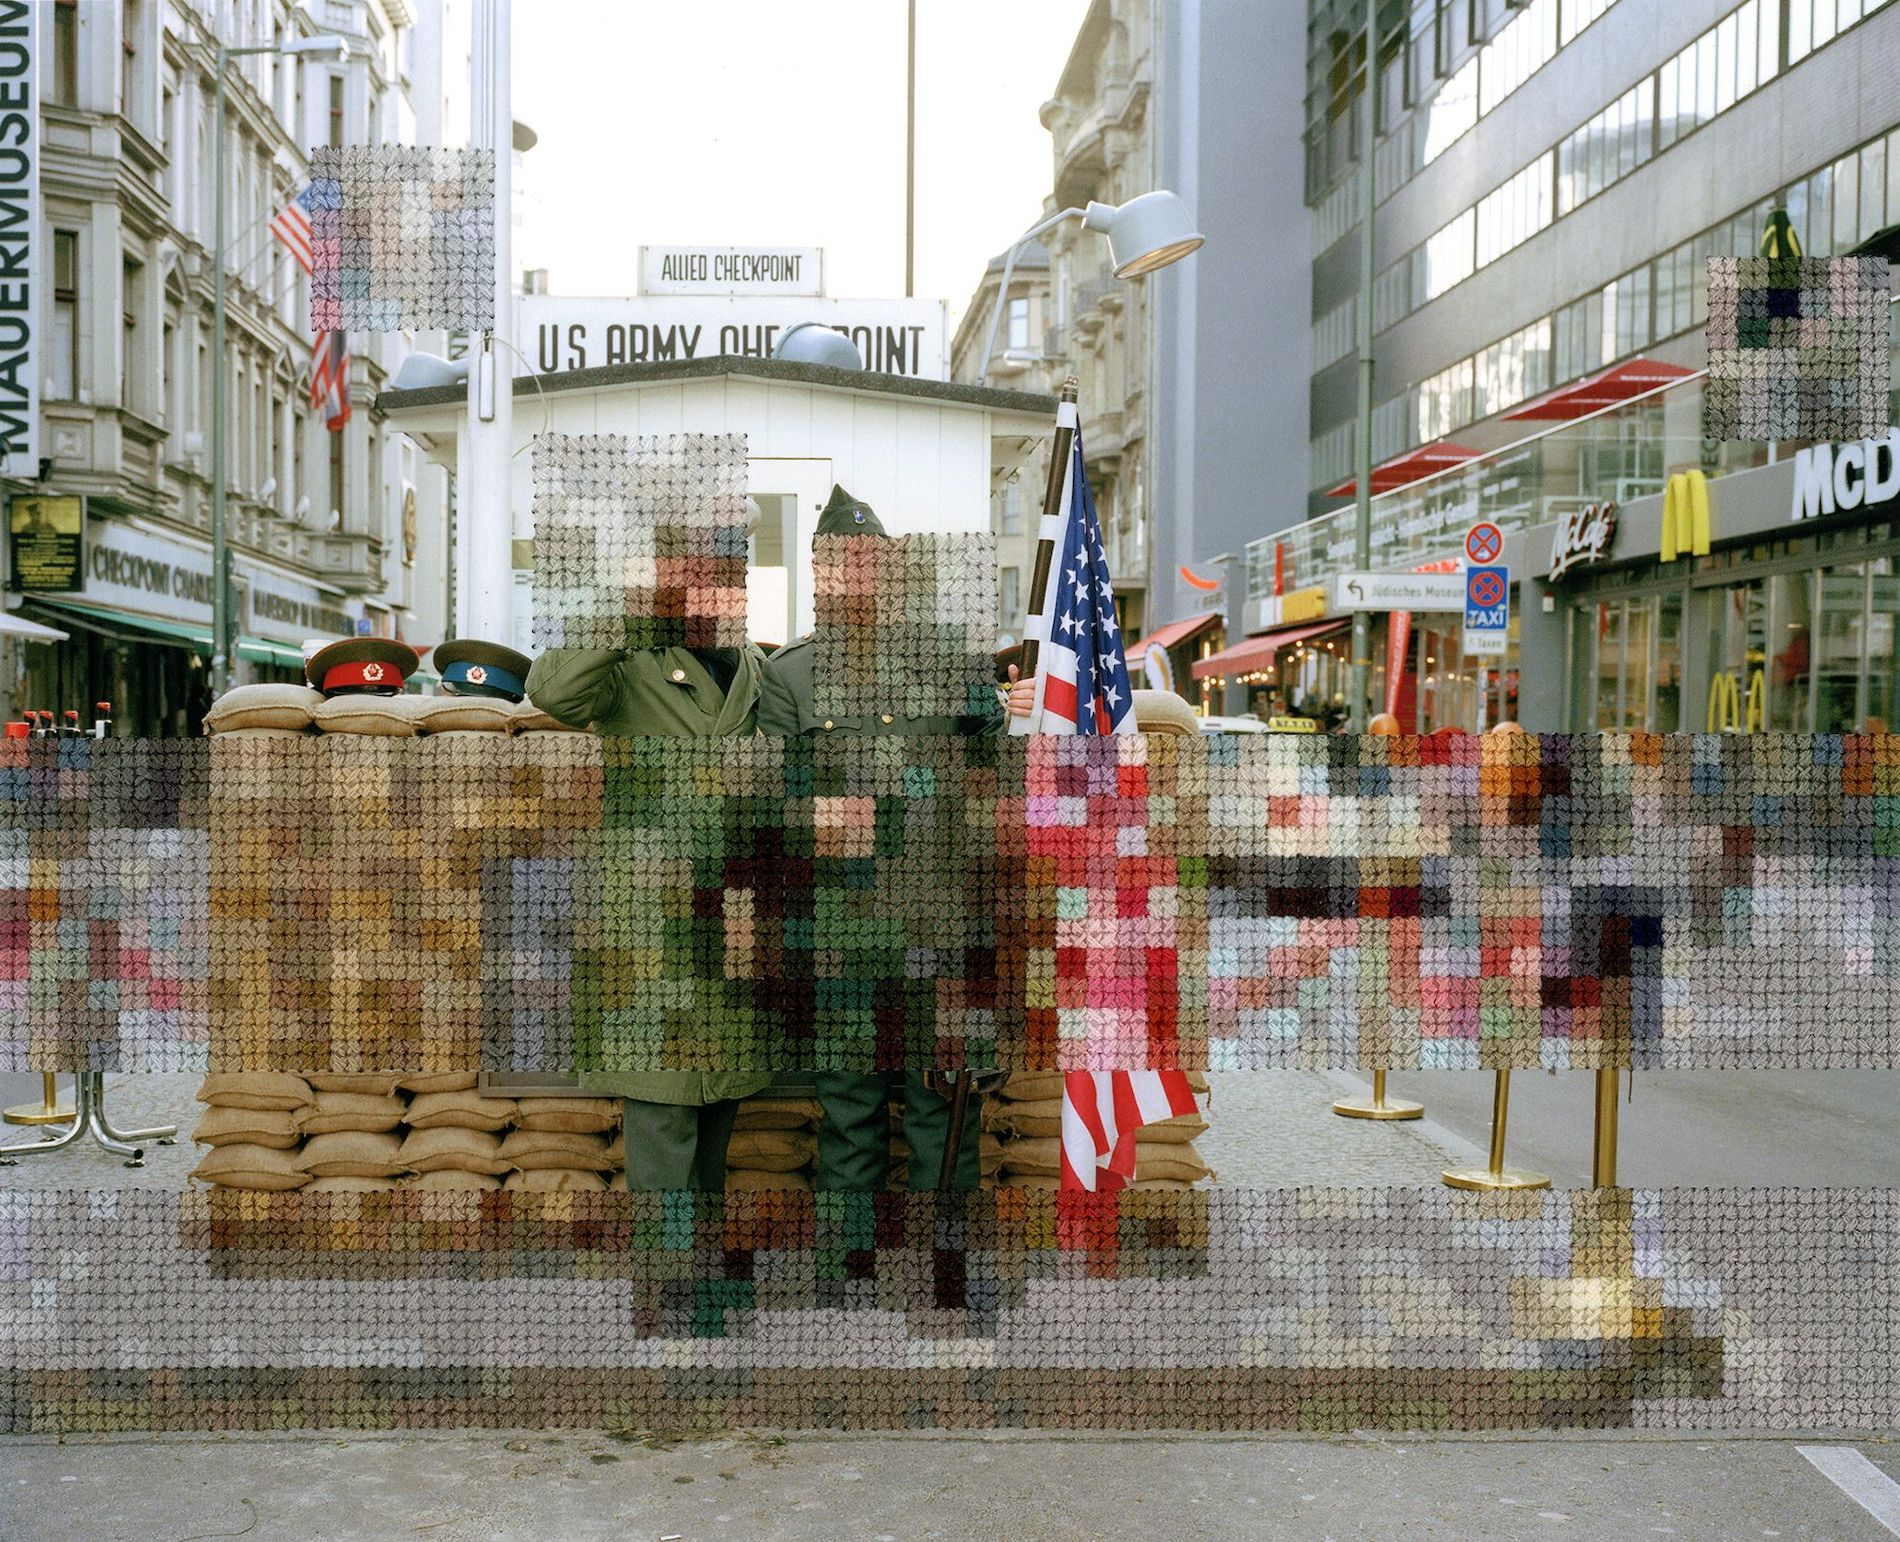 Color photo of Berlin military checkpoint with embroidery resembling pixels stitched into parts of the image